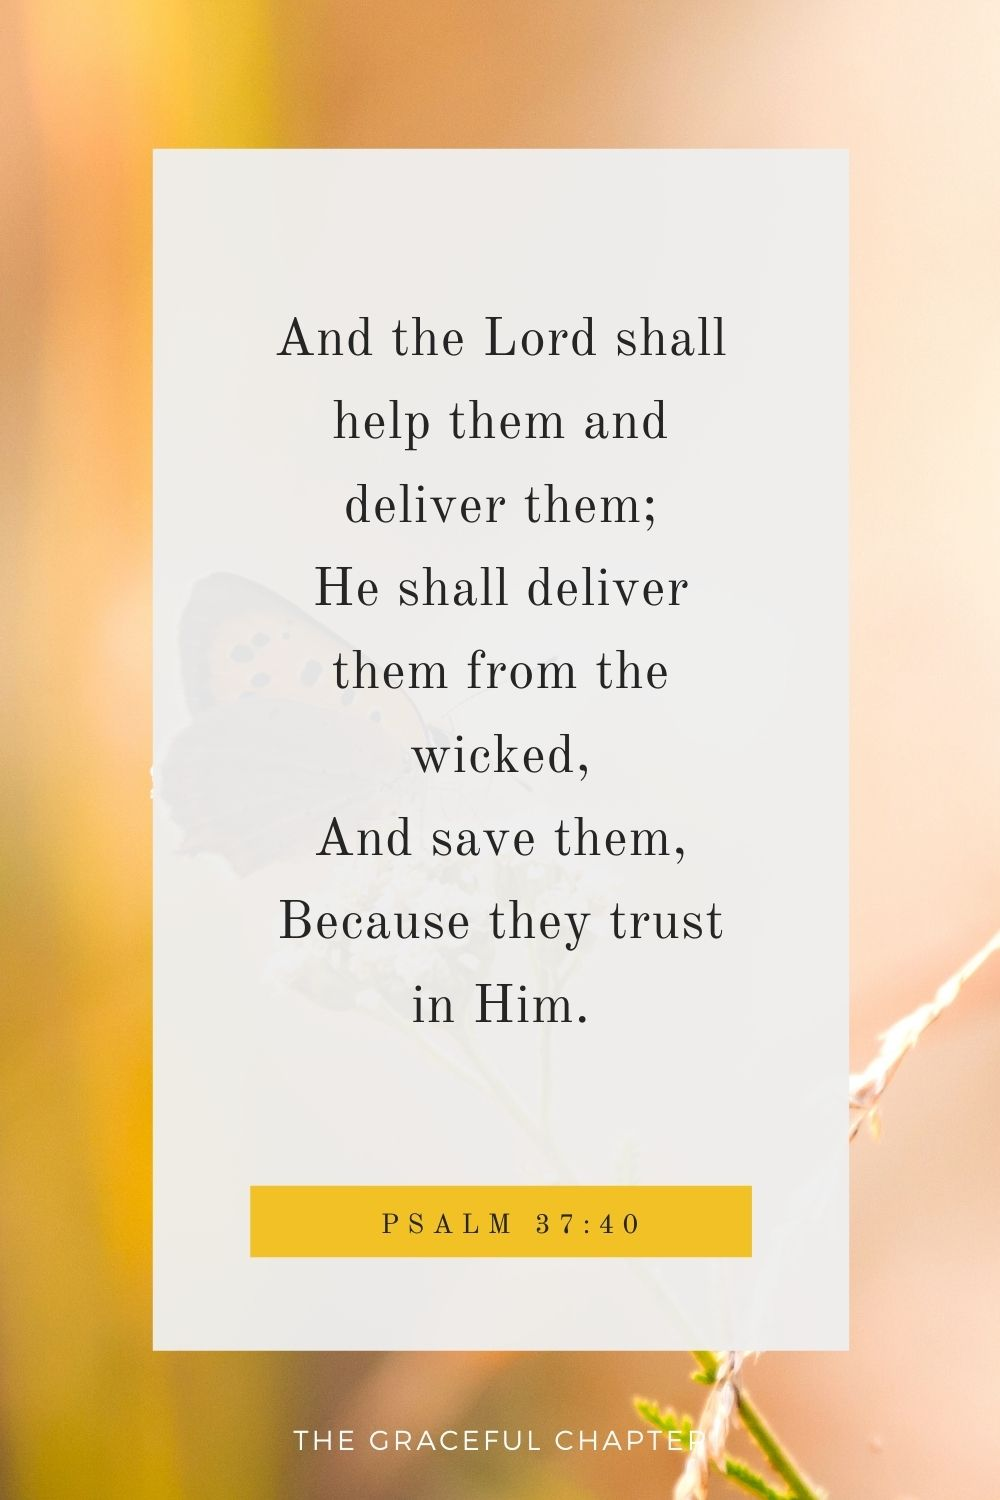 And the Lord shall help them and deliver them; He shall deliver them from the wicked, And save them, Because they trust in Him. Psalm 37:40